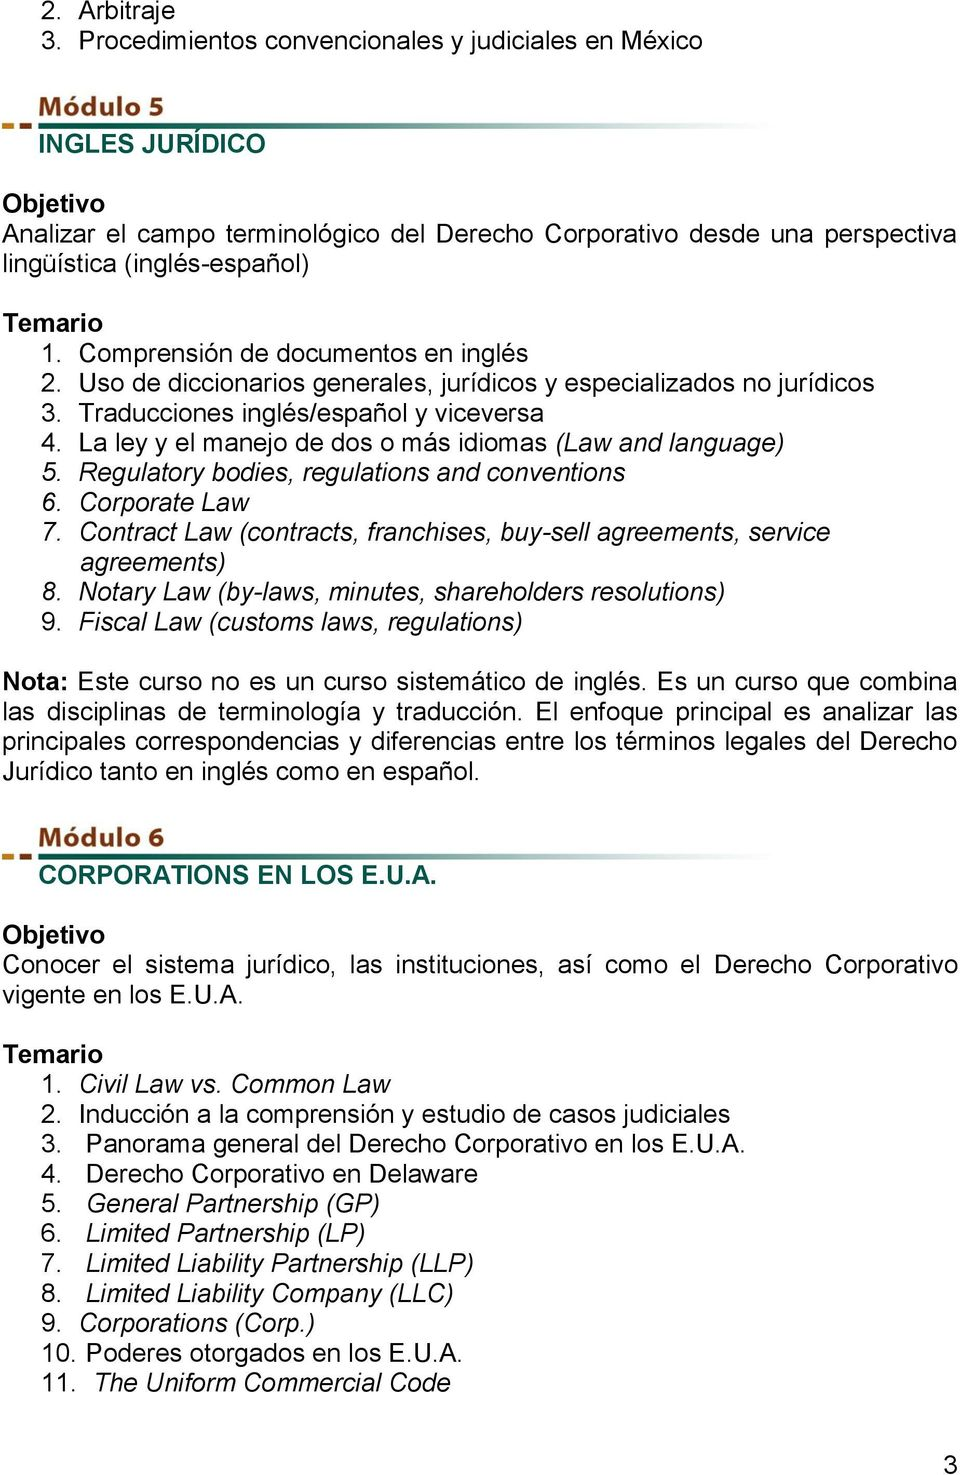 La ley y el manejo de dos o más idiomas (Law and language) 5. Regulatory bodies, regulations and conventions 6. Corporate Law 7.